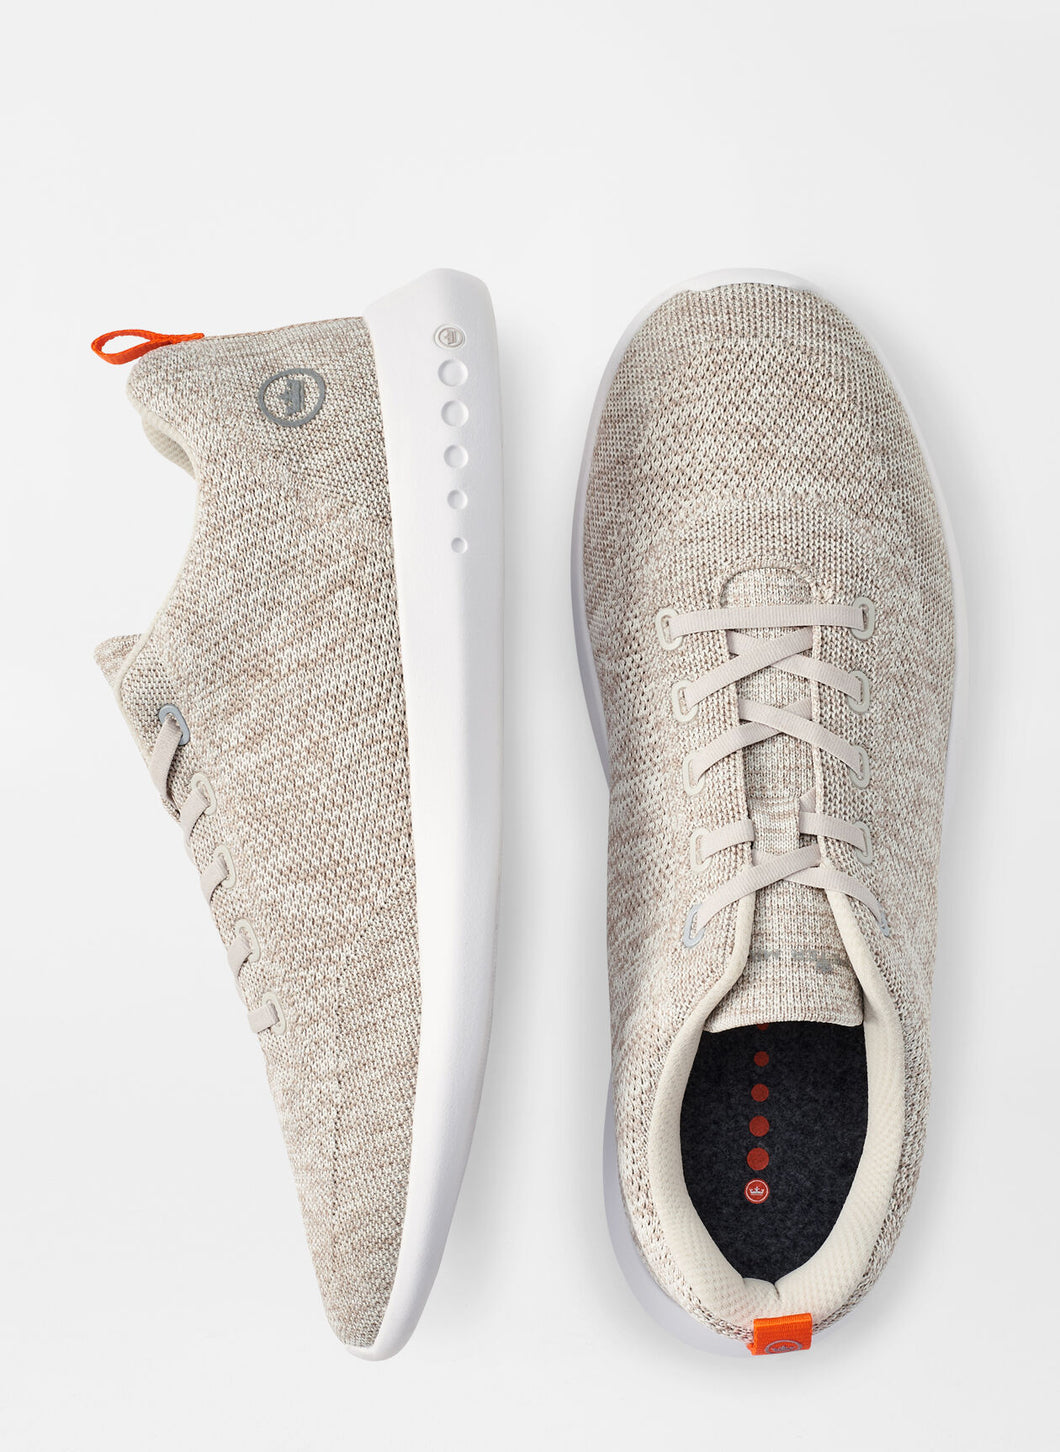 Peter Millar Hyperlight Glide Sneaker in Stone